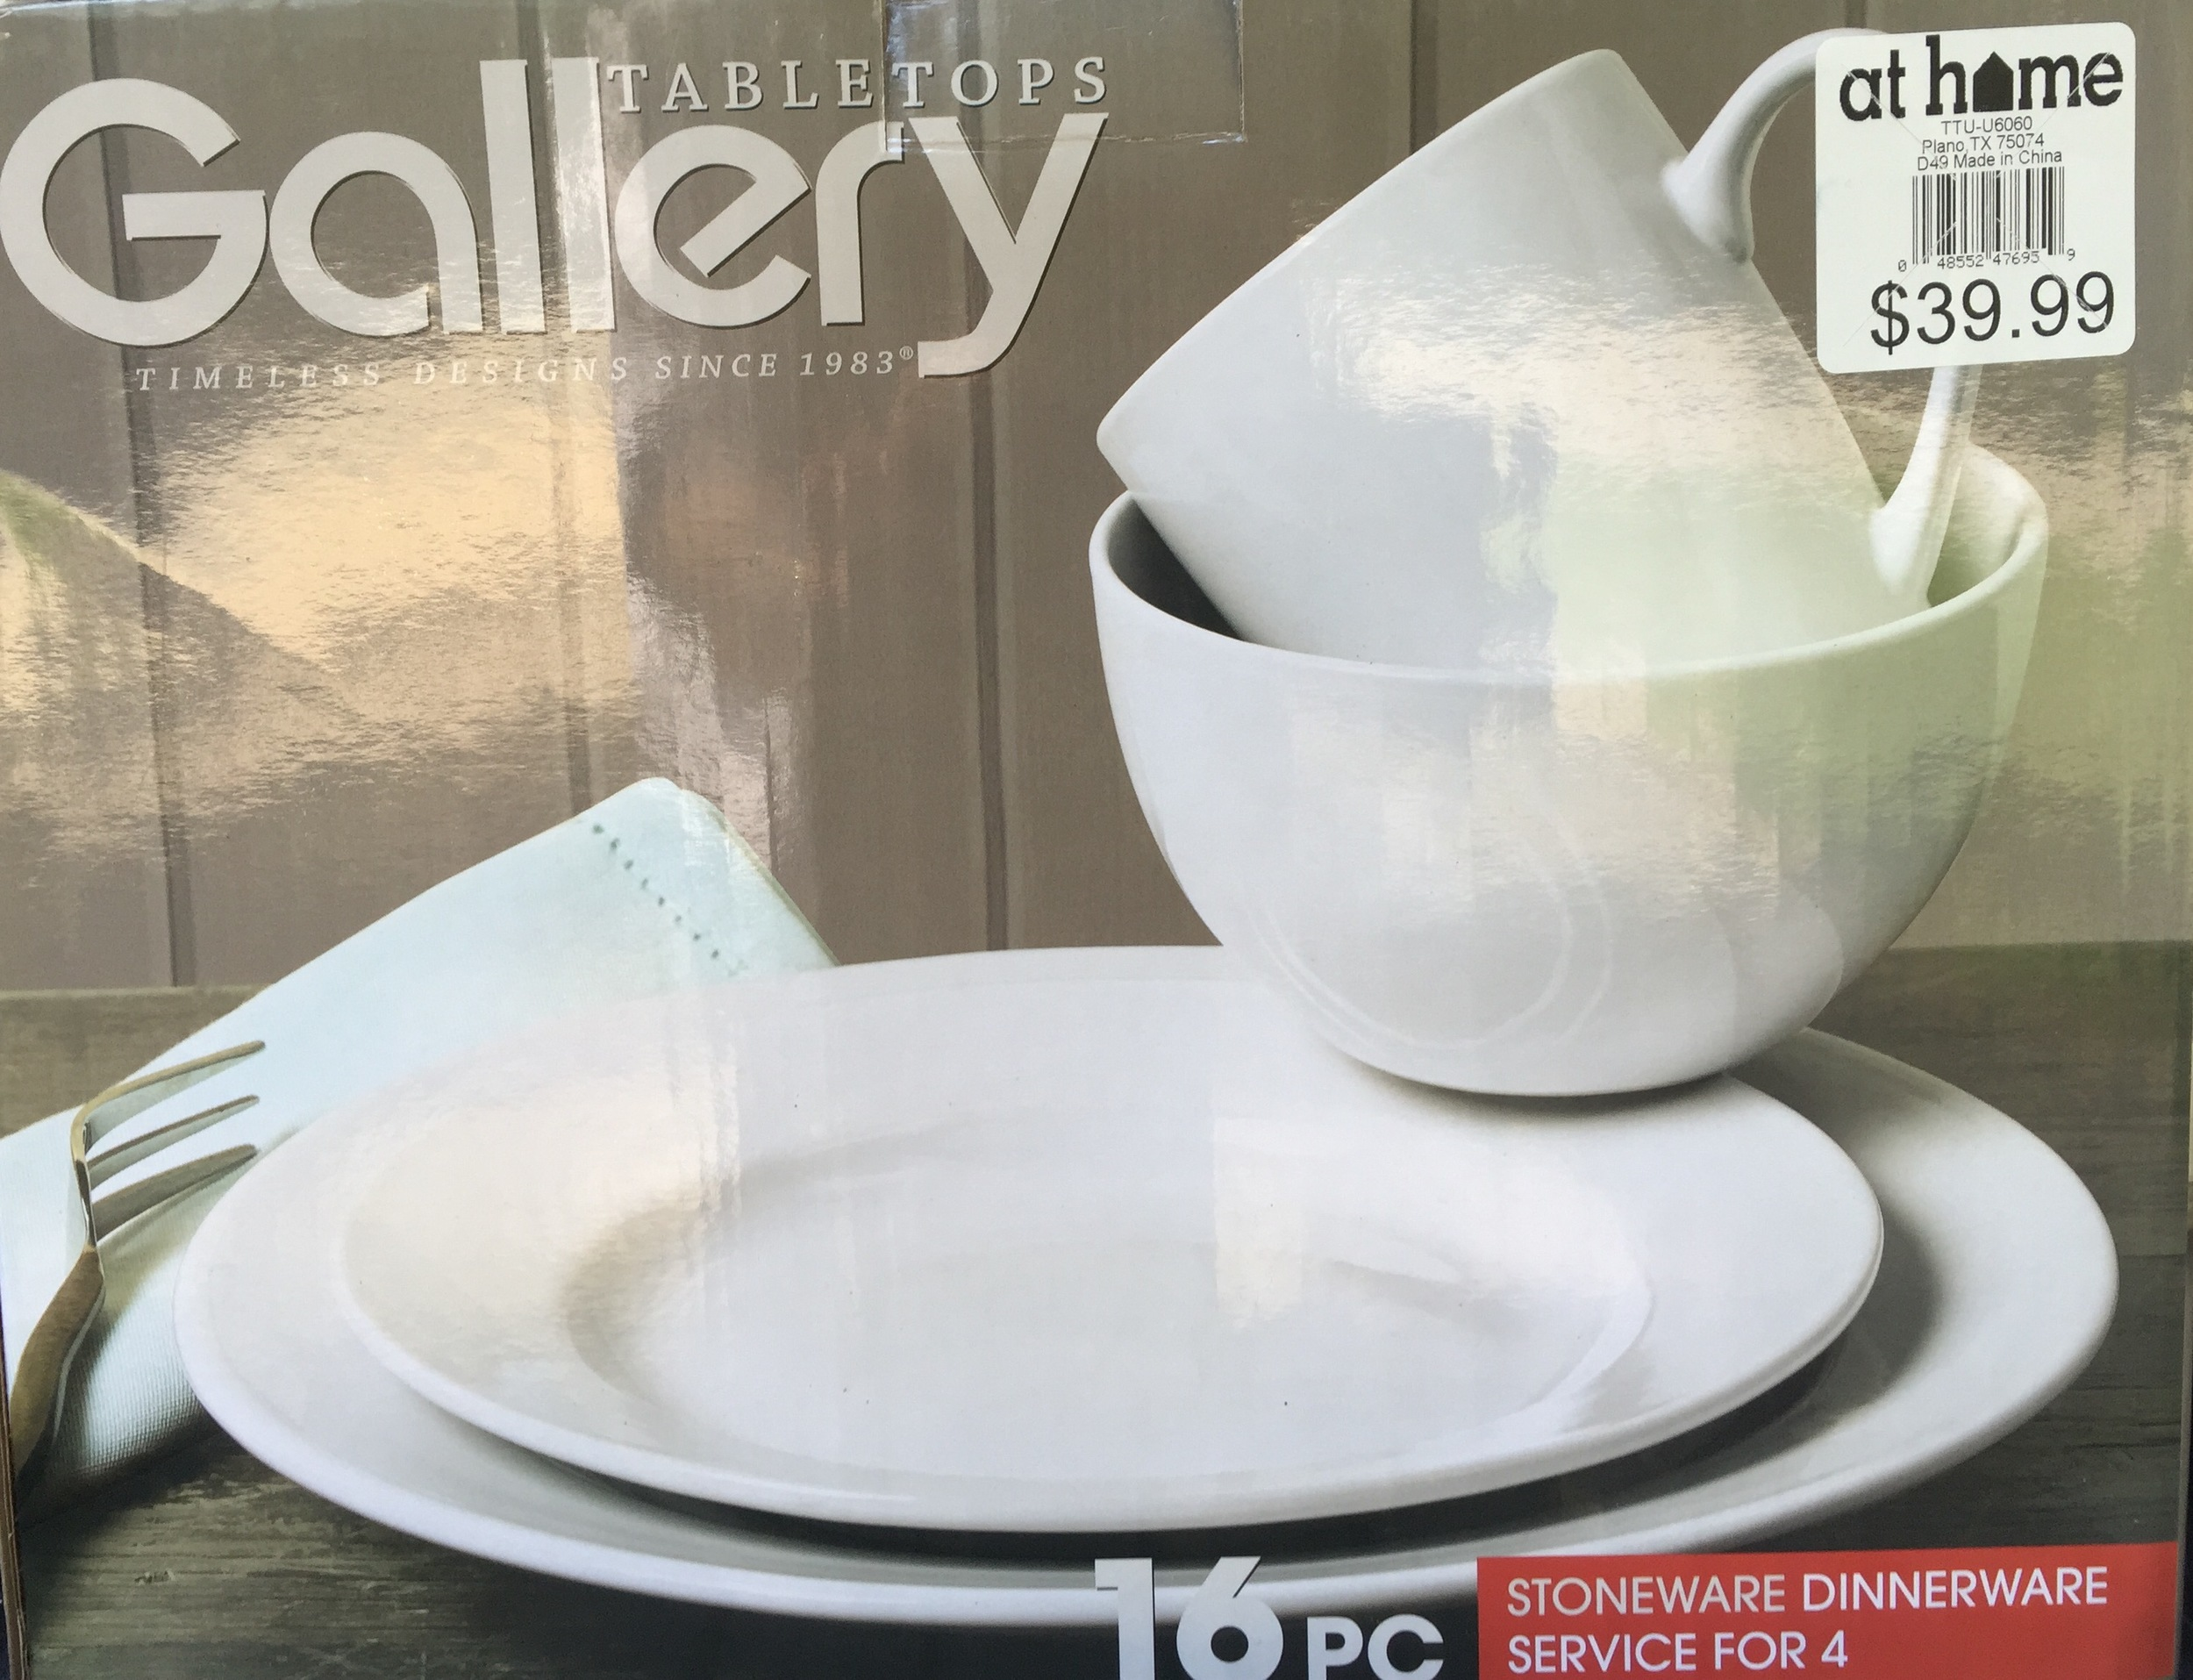 16-piece stoneware dinnerware service for four available at AtHome.com